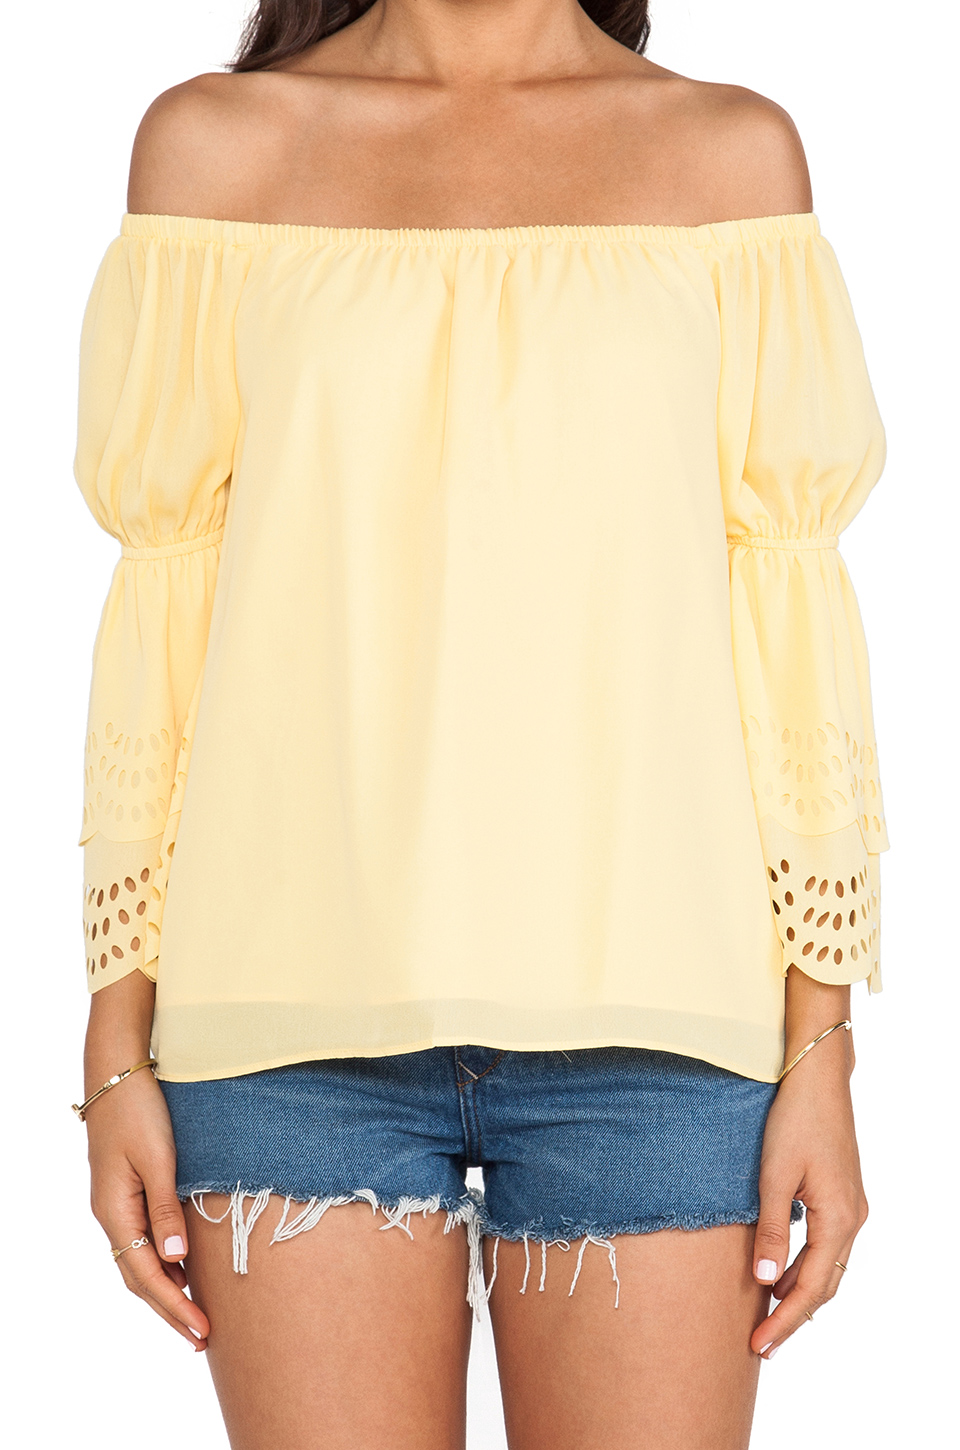 VAVA by Joy Han Celeste Off Shoulder Top in Yellow from REVOLVEclothing.com